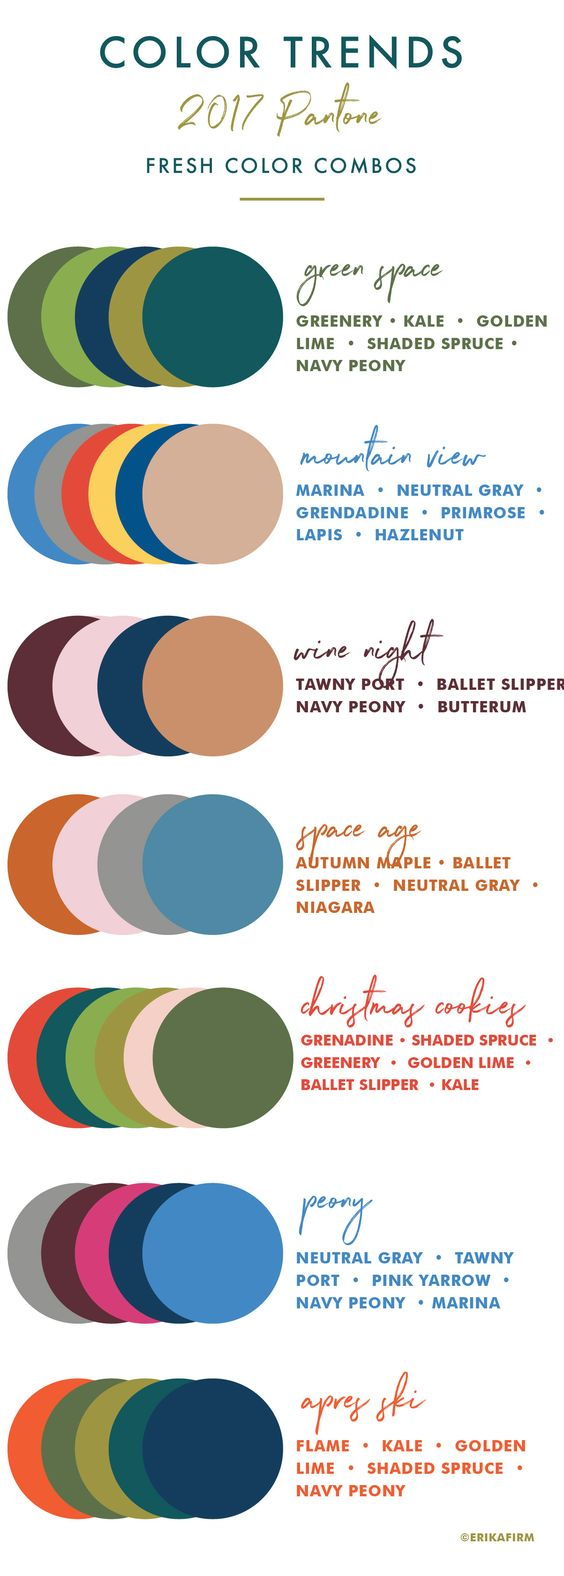 Here's the official 2017 Fall Colors.  You will likely find clothing lines in the stores using these colors.